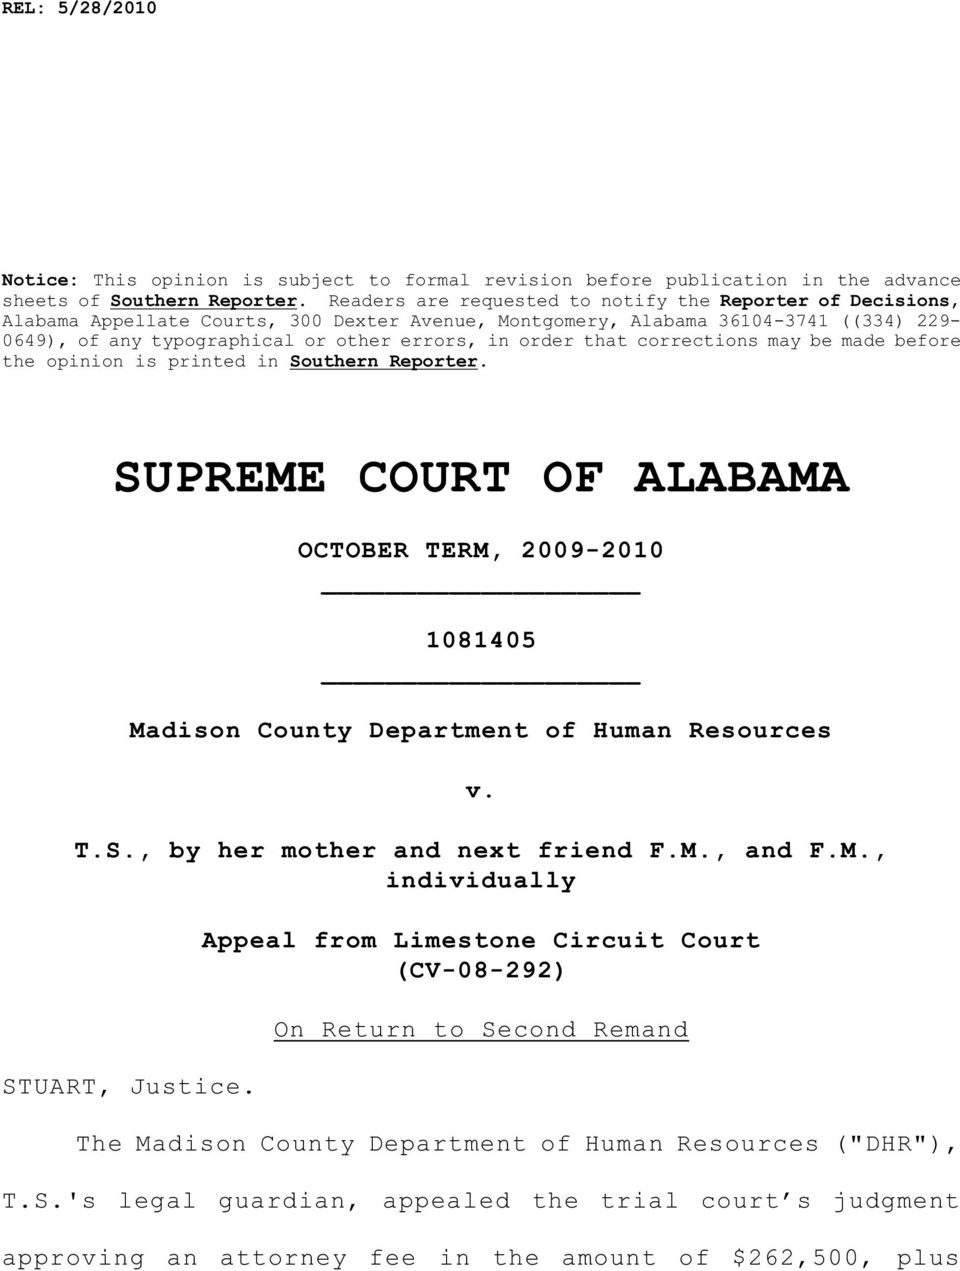 that corrections may be made before the opinion is printed in Southern Reporter. SUPREME COURT OF ALABAMA OCTOBER TERM, 2009-2010 1081405 Madison County Department of Human Resources v. T.S., by her mother and next friend F.